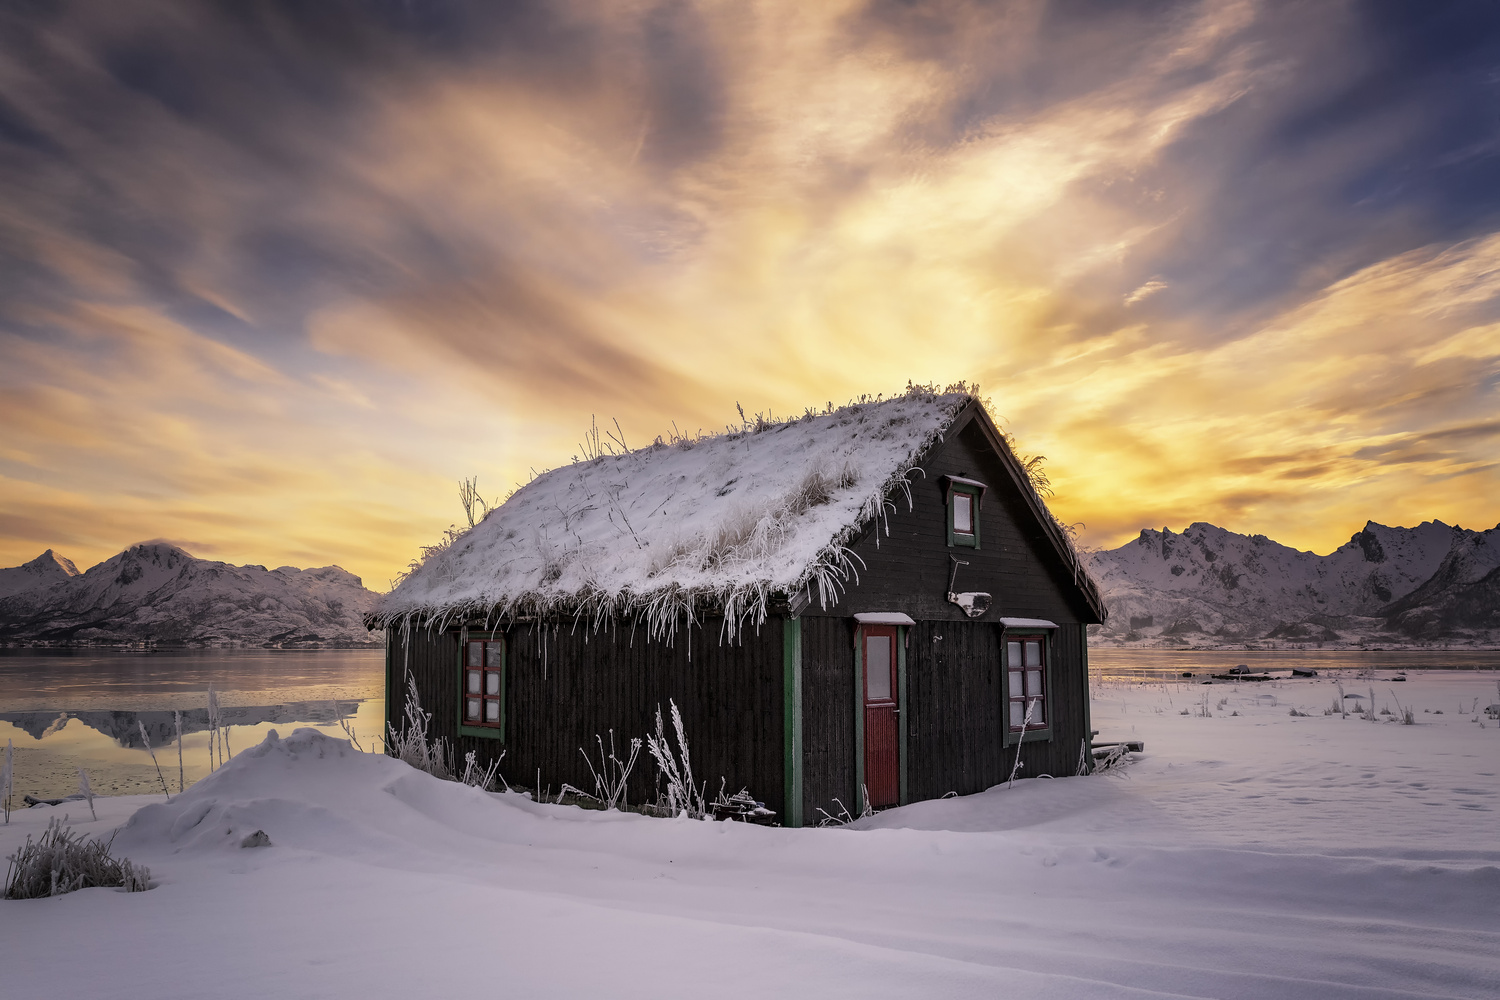 The Cabin by Rickard Eriksson